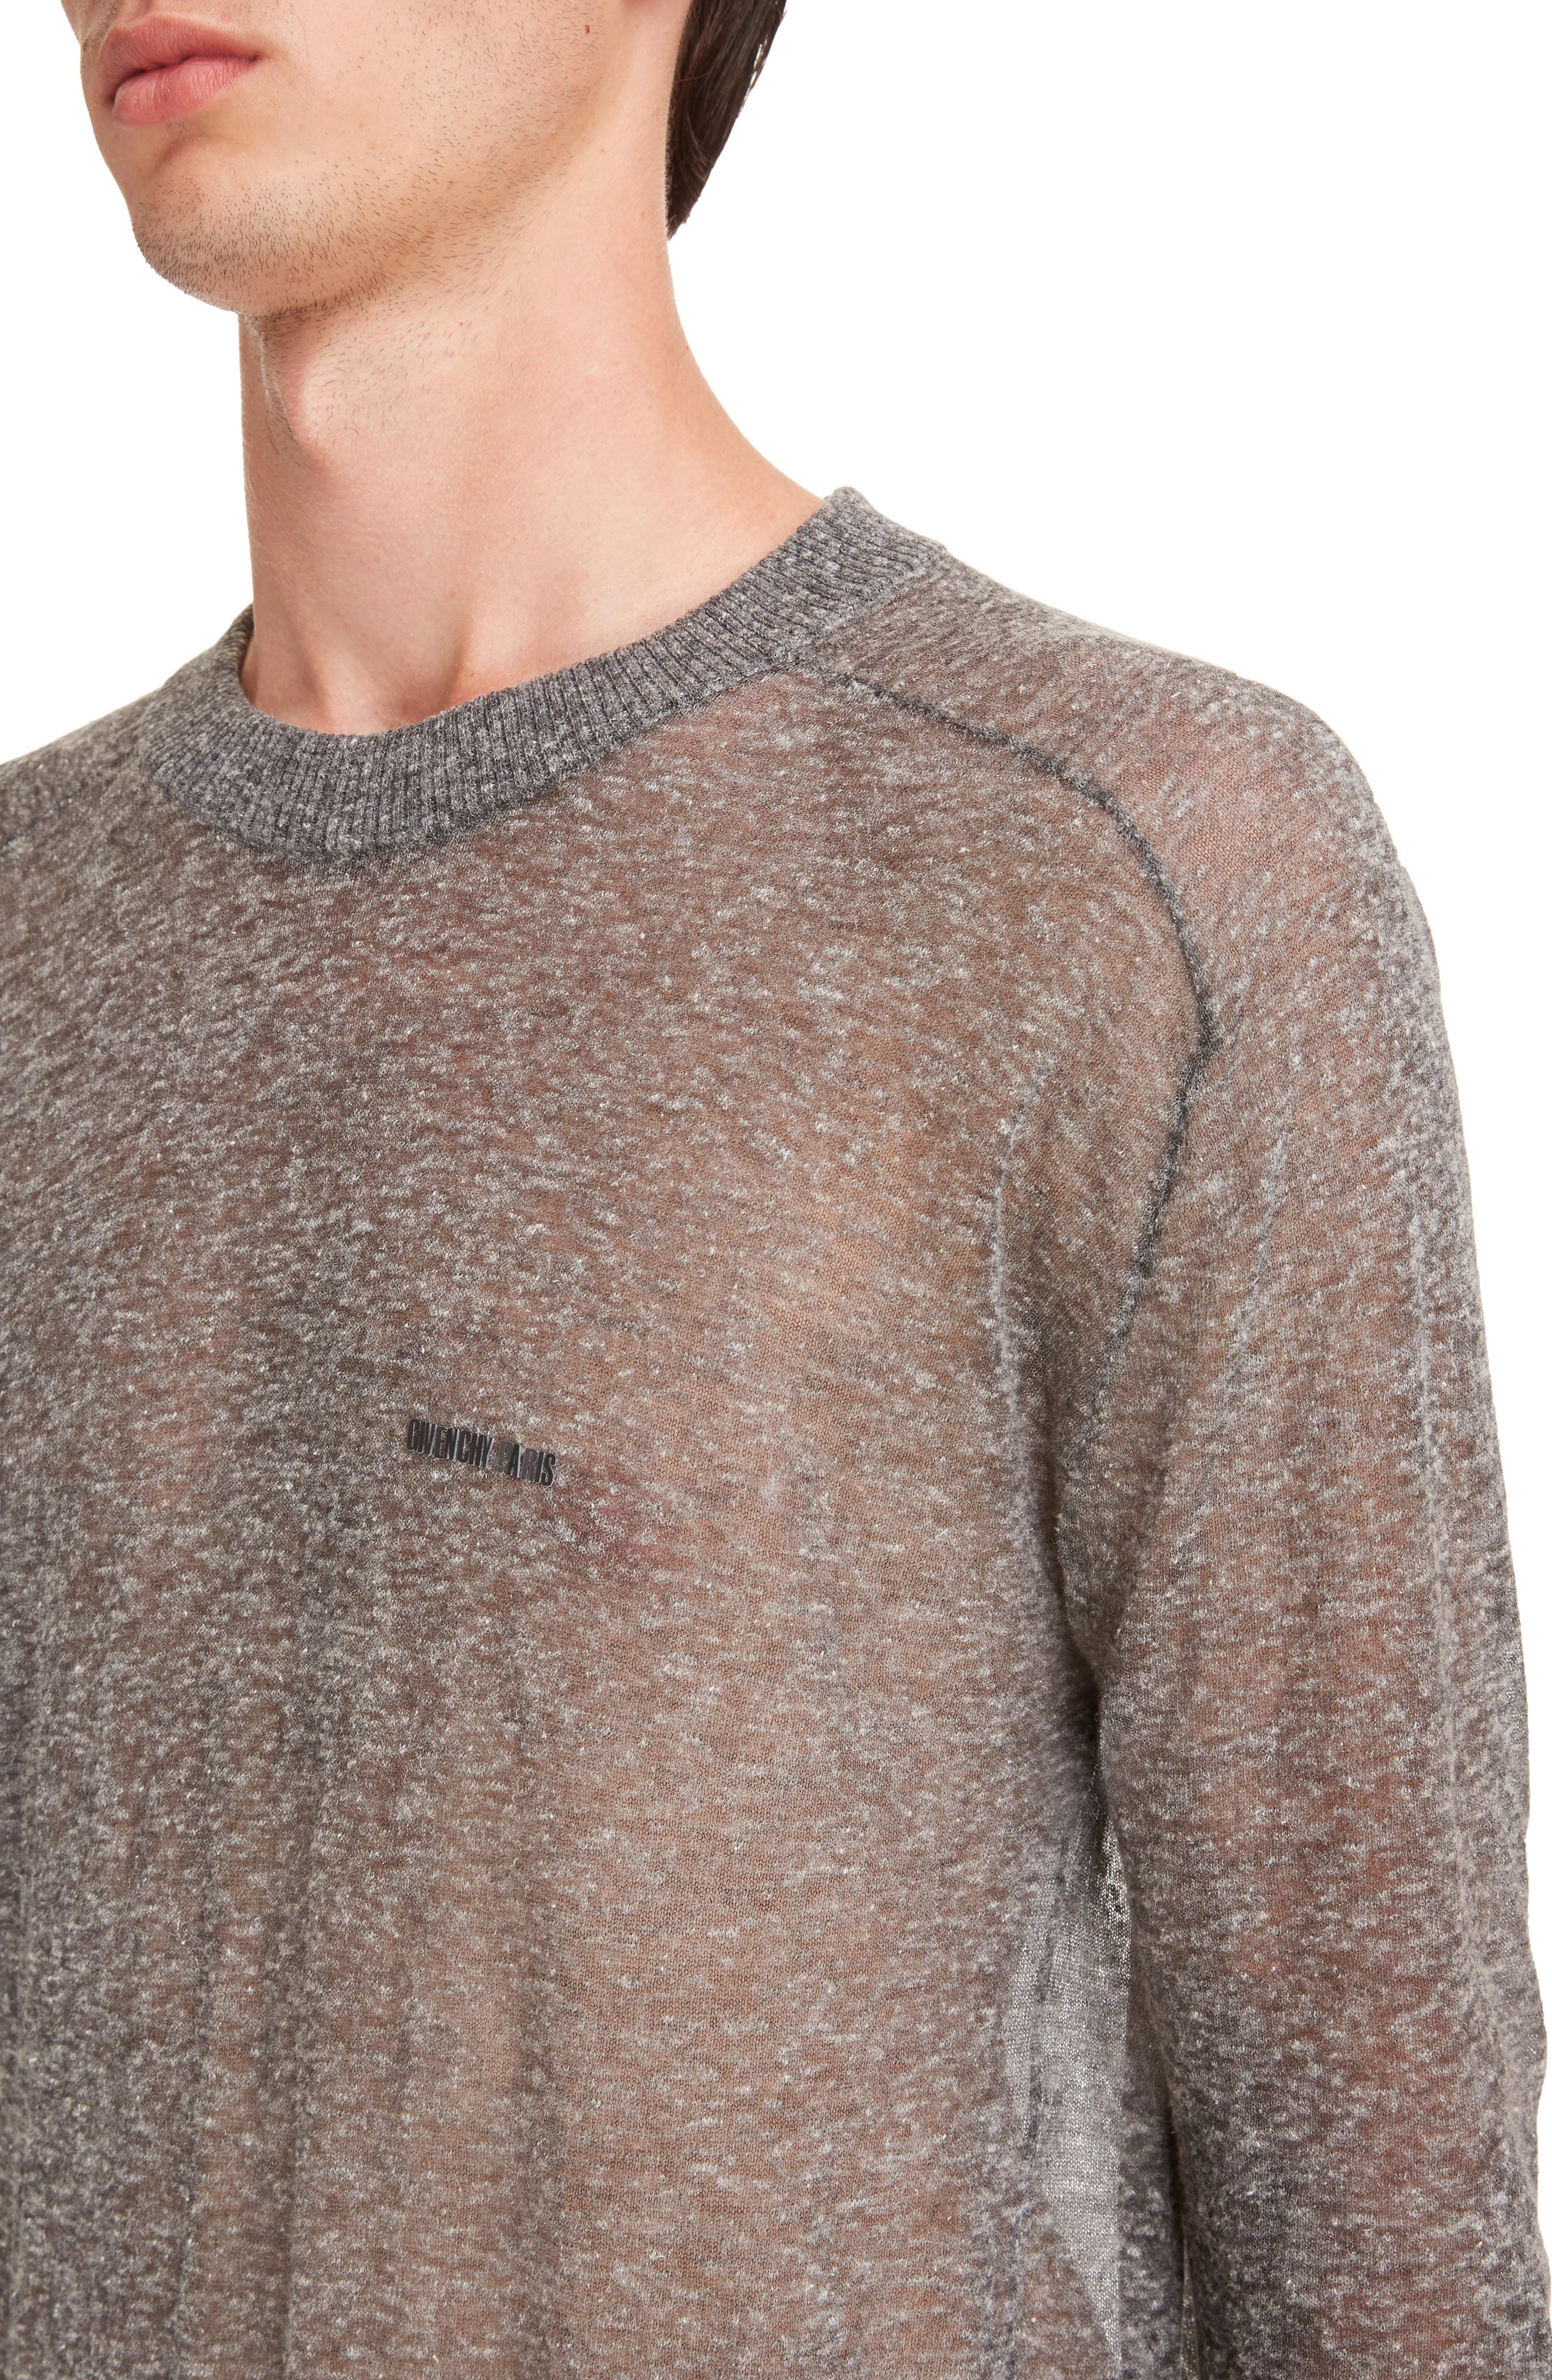 Technical Linen Blend Crewneck Sweater,                             Alternate thumbnail 4, color,                             020